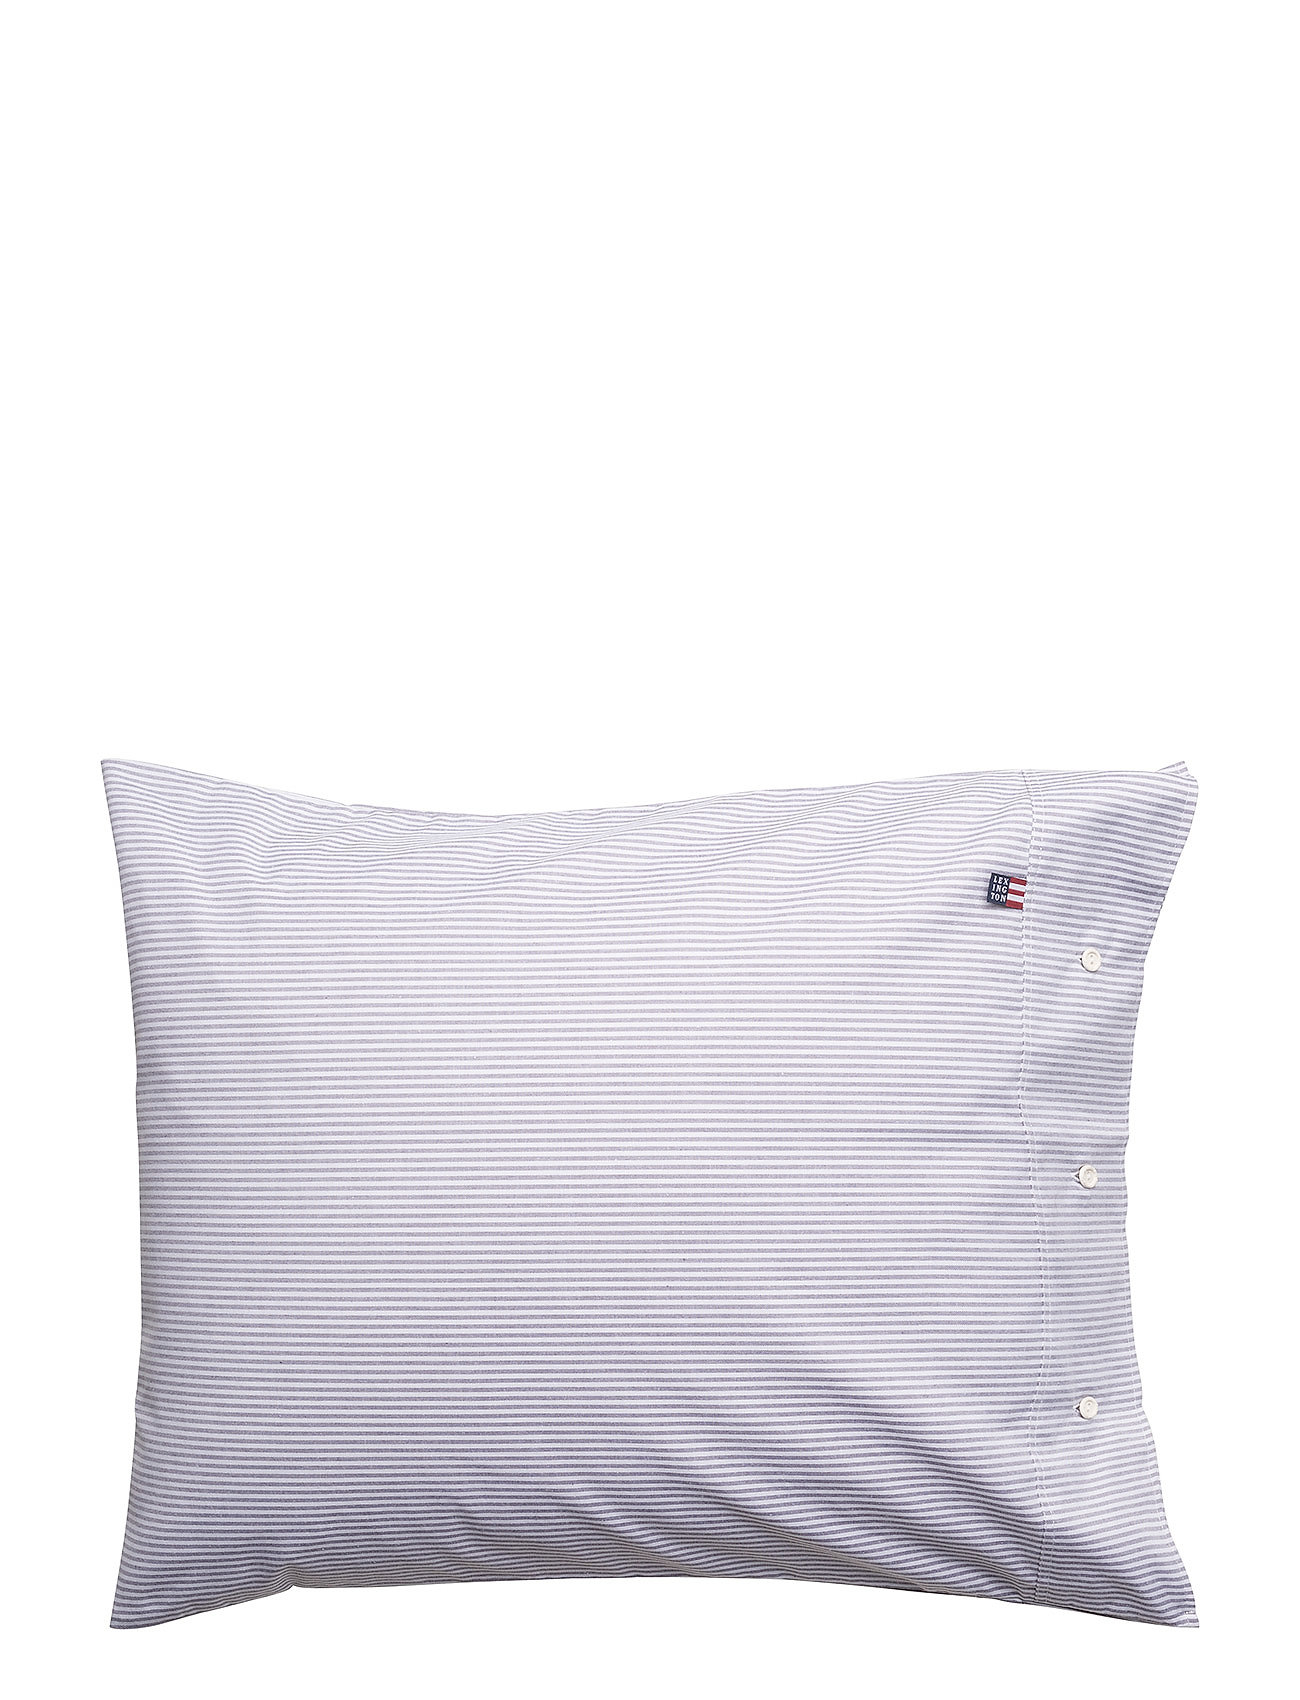 Lexington Home Pin Point Navy/White Pillowcase - NAVY/WHITE